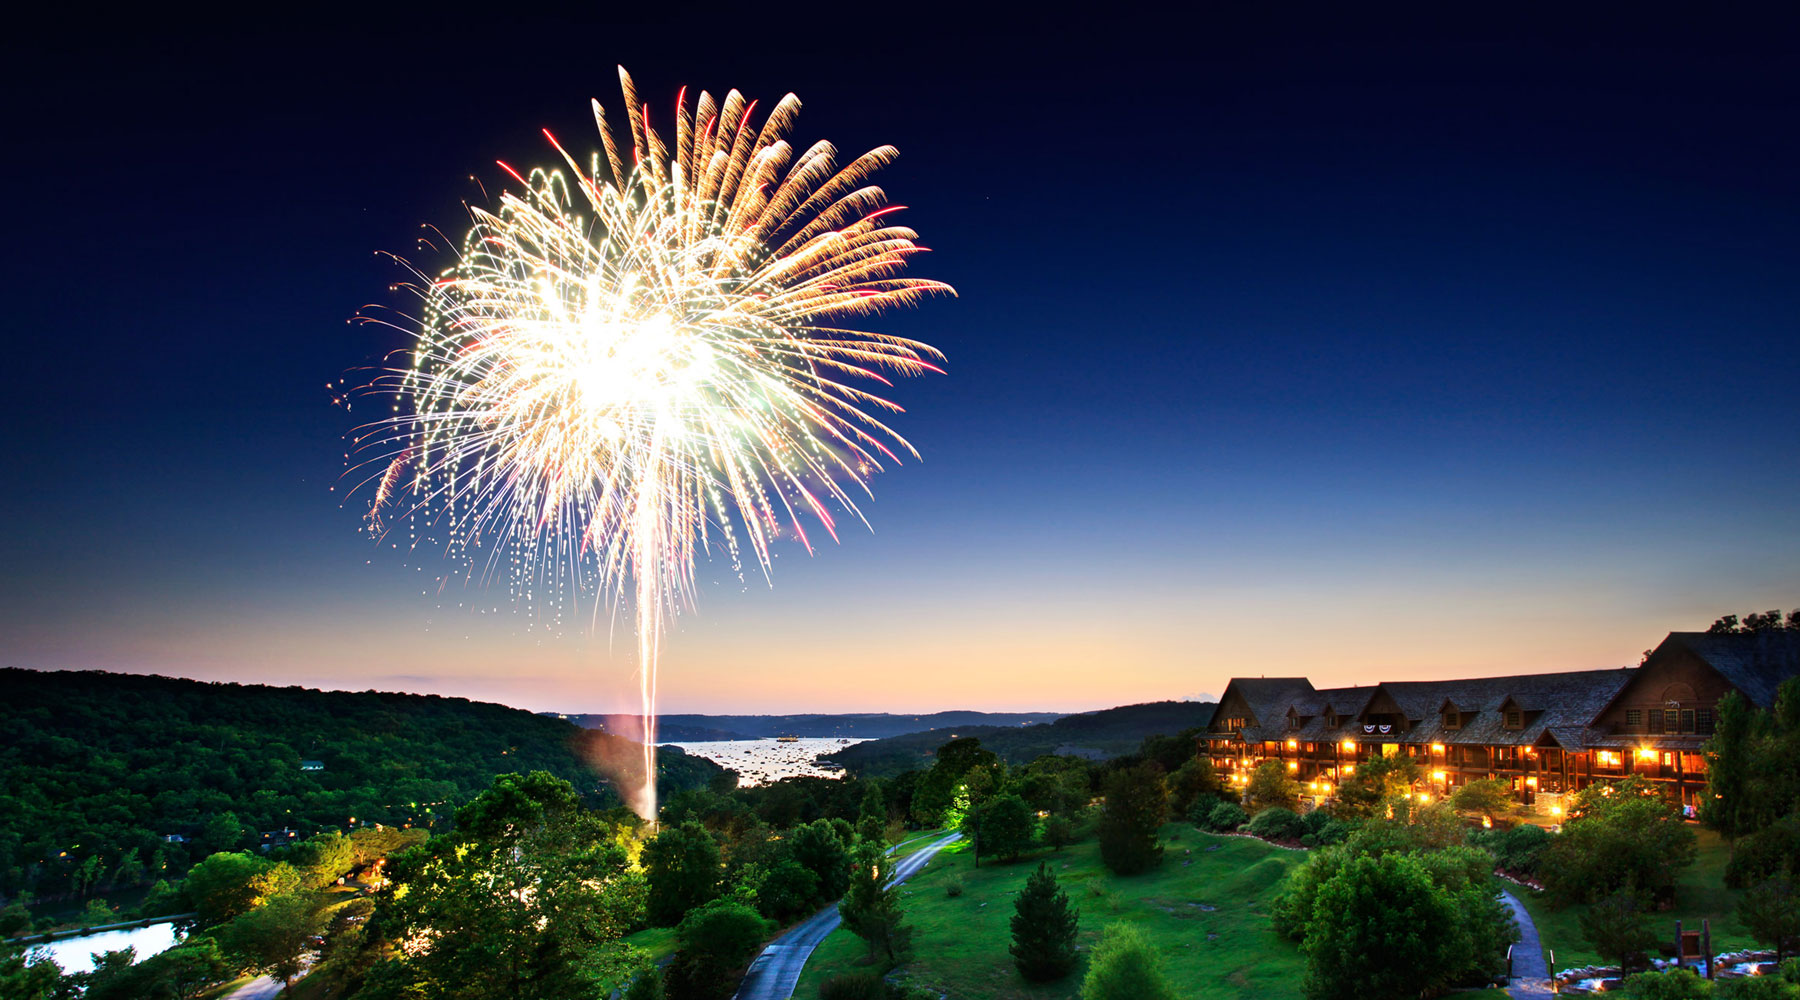 Fireworks light up the sky at Big Cedar Lodge